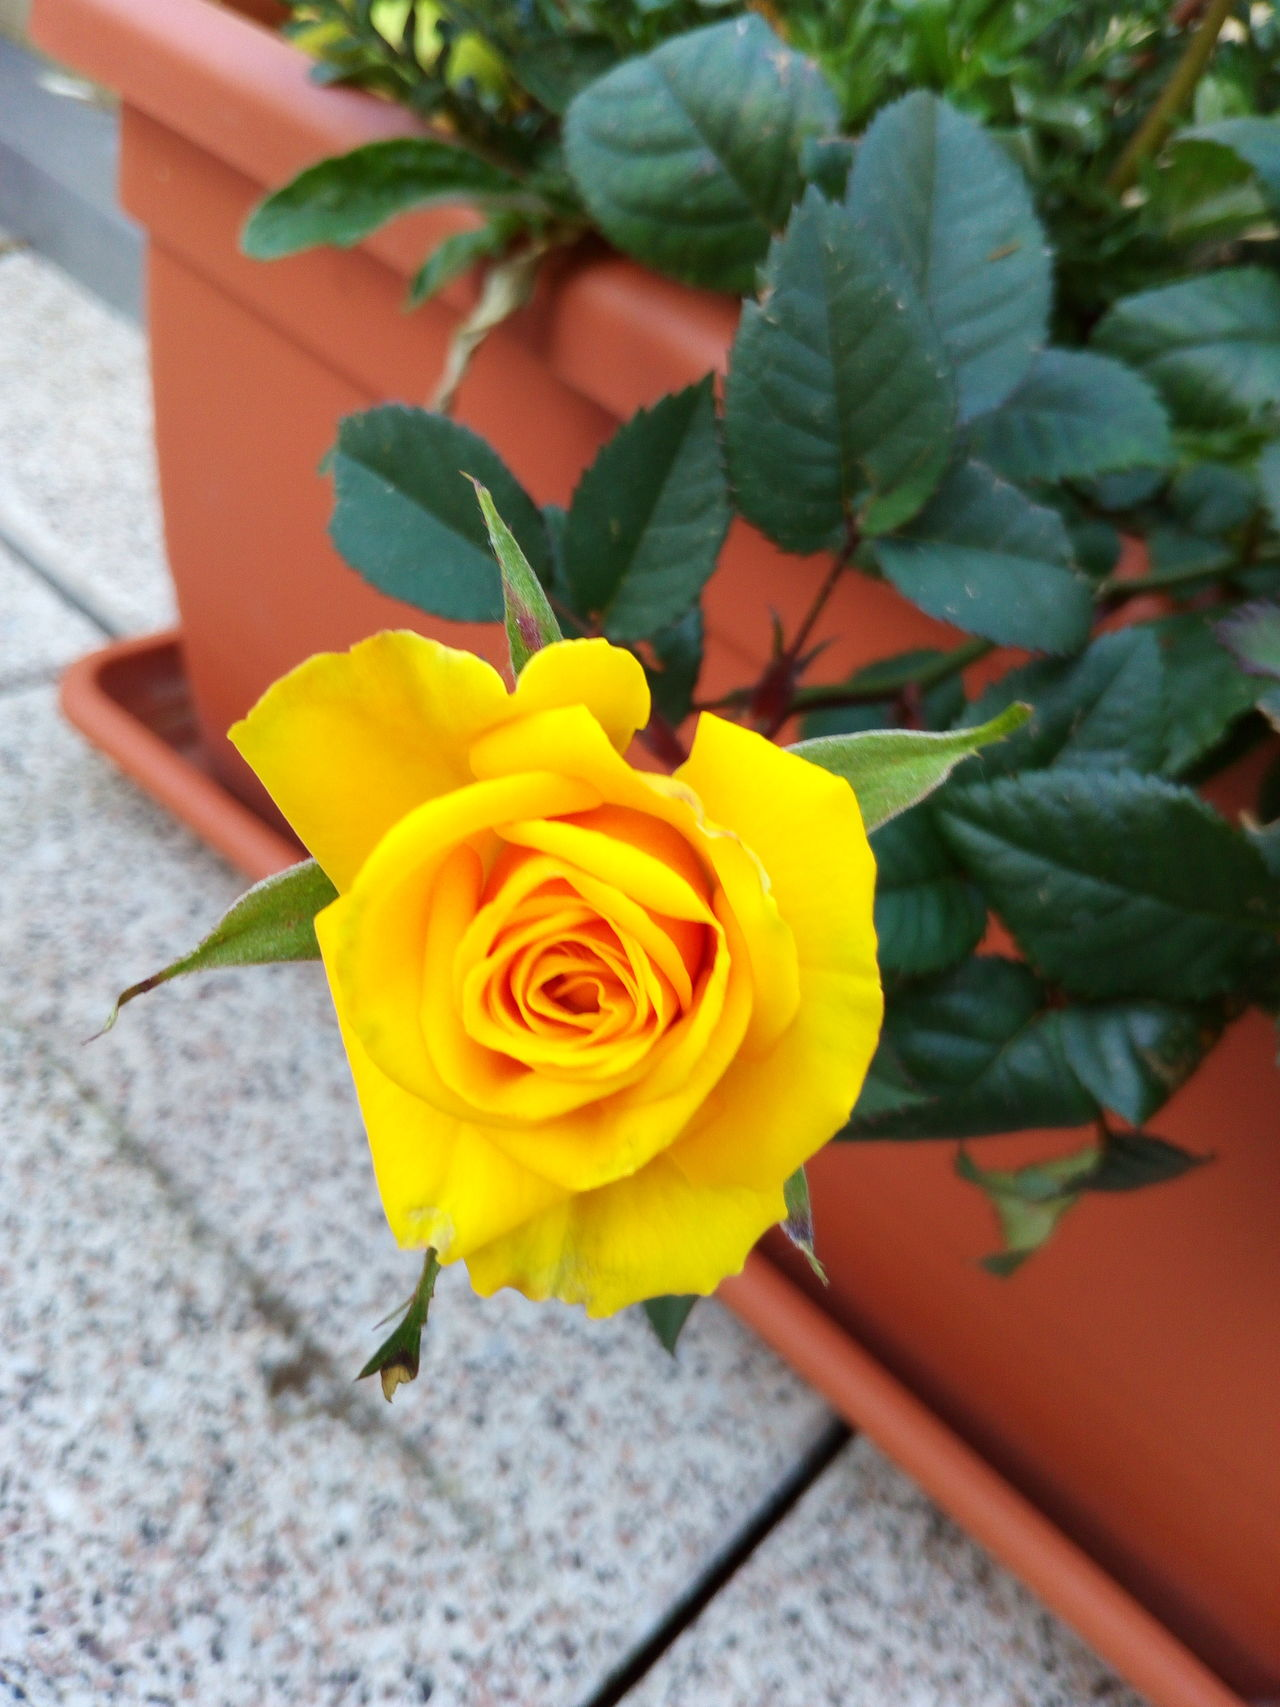 Rose🌹 Hanging Out Taking Photos Hello World Check This Out Hi! Enjoying Life Beautiful Day ❤ Yellow Rose Yellow Flower Blume